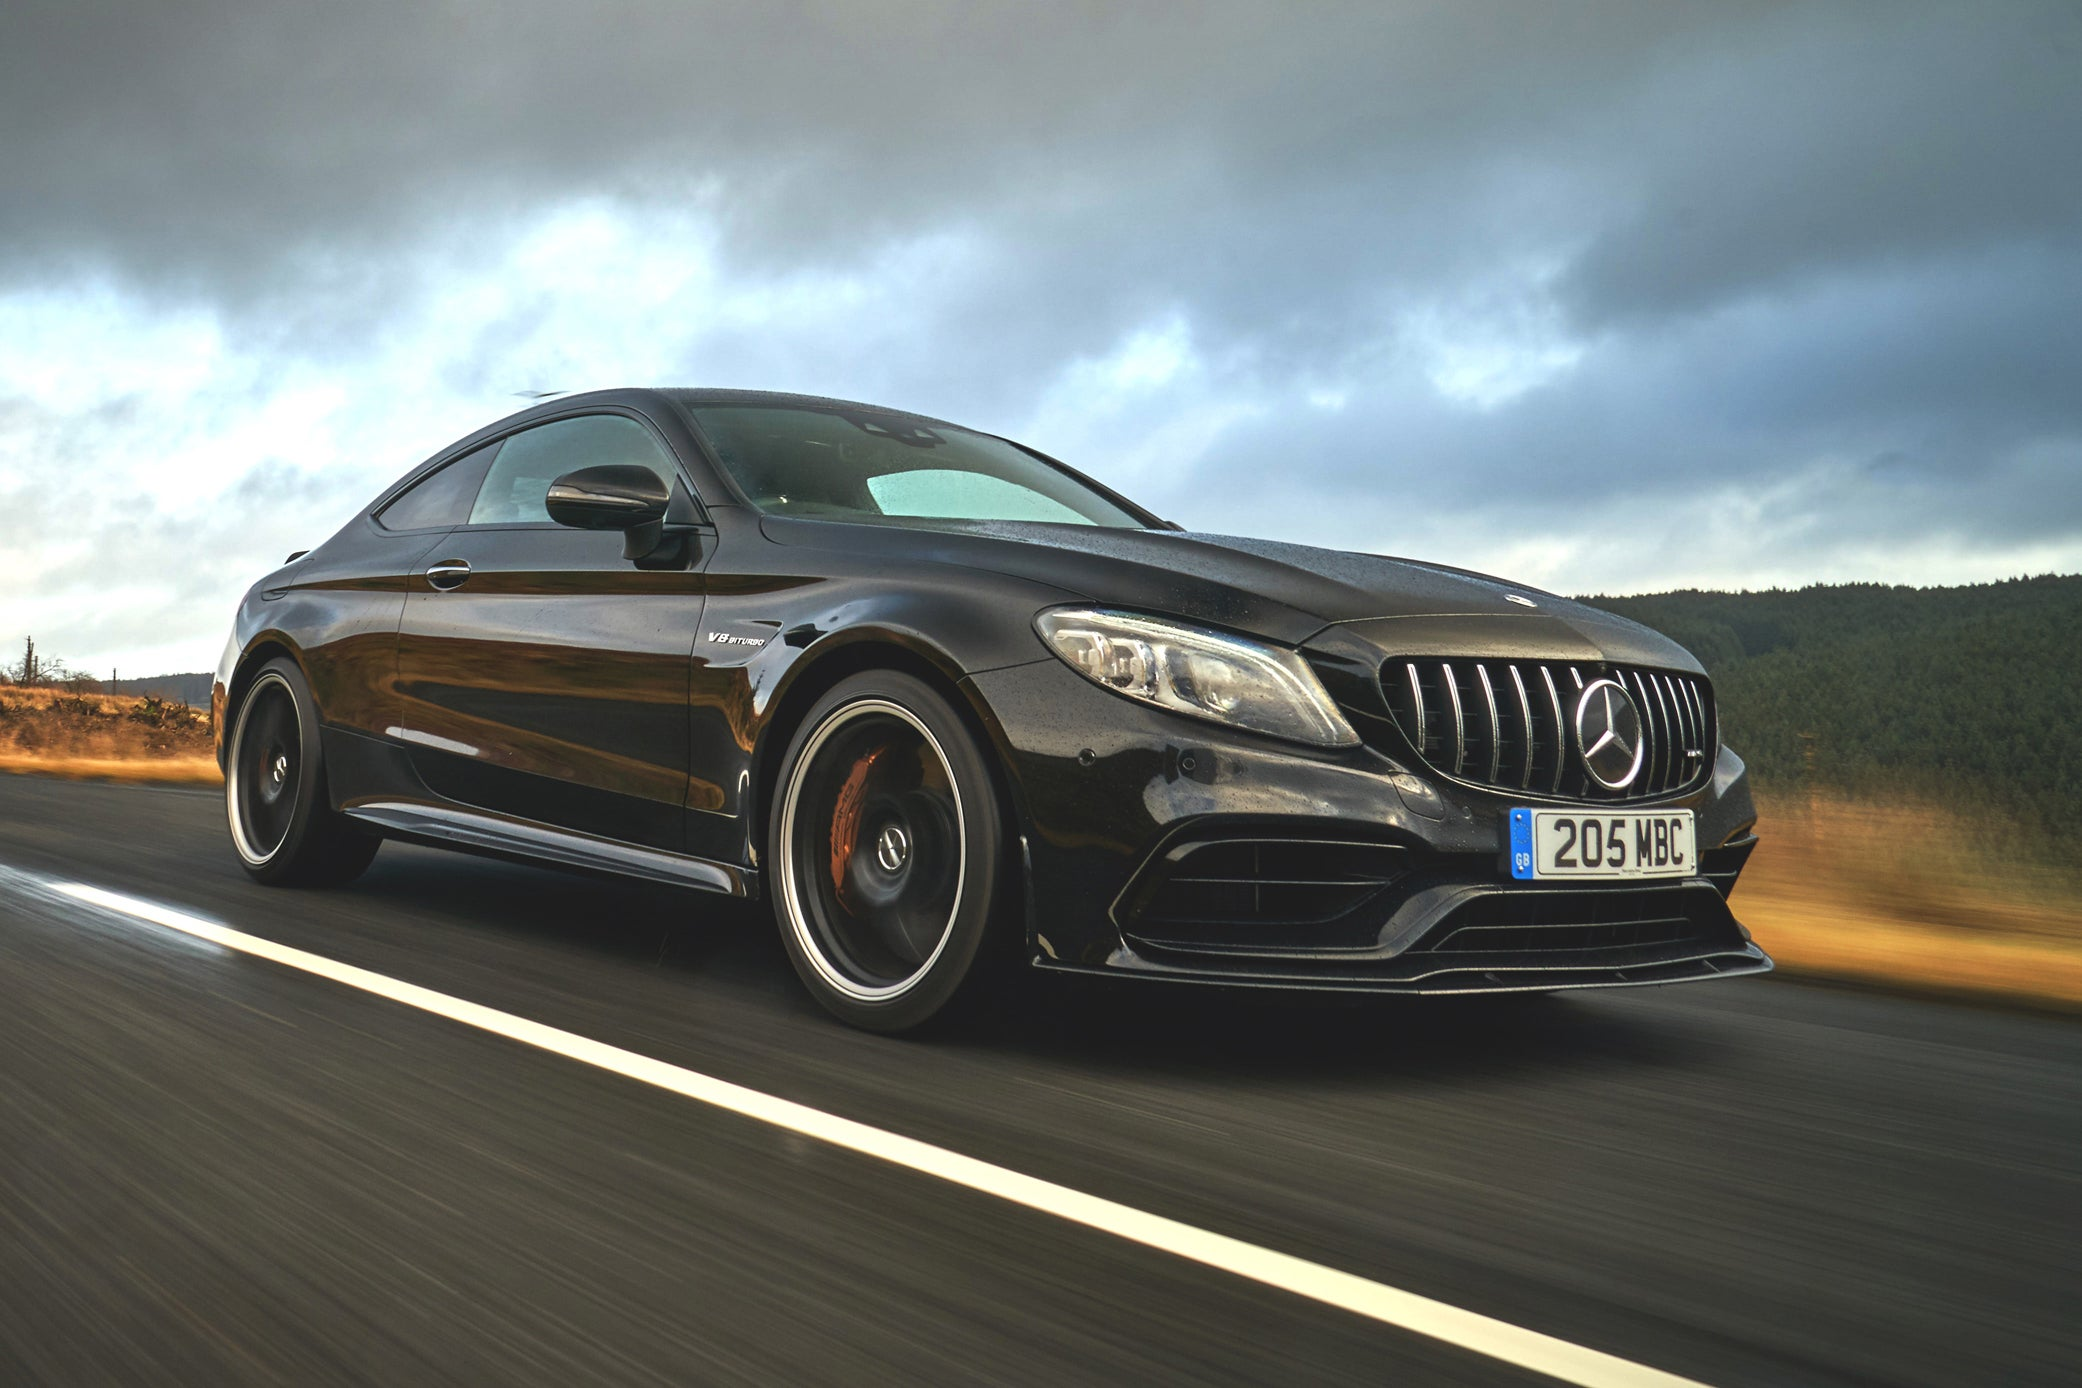 Mercedes AMG C 63 Coupe on road